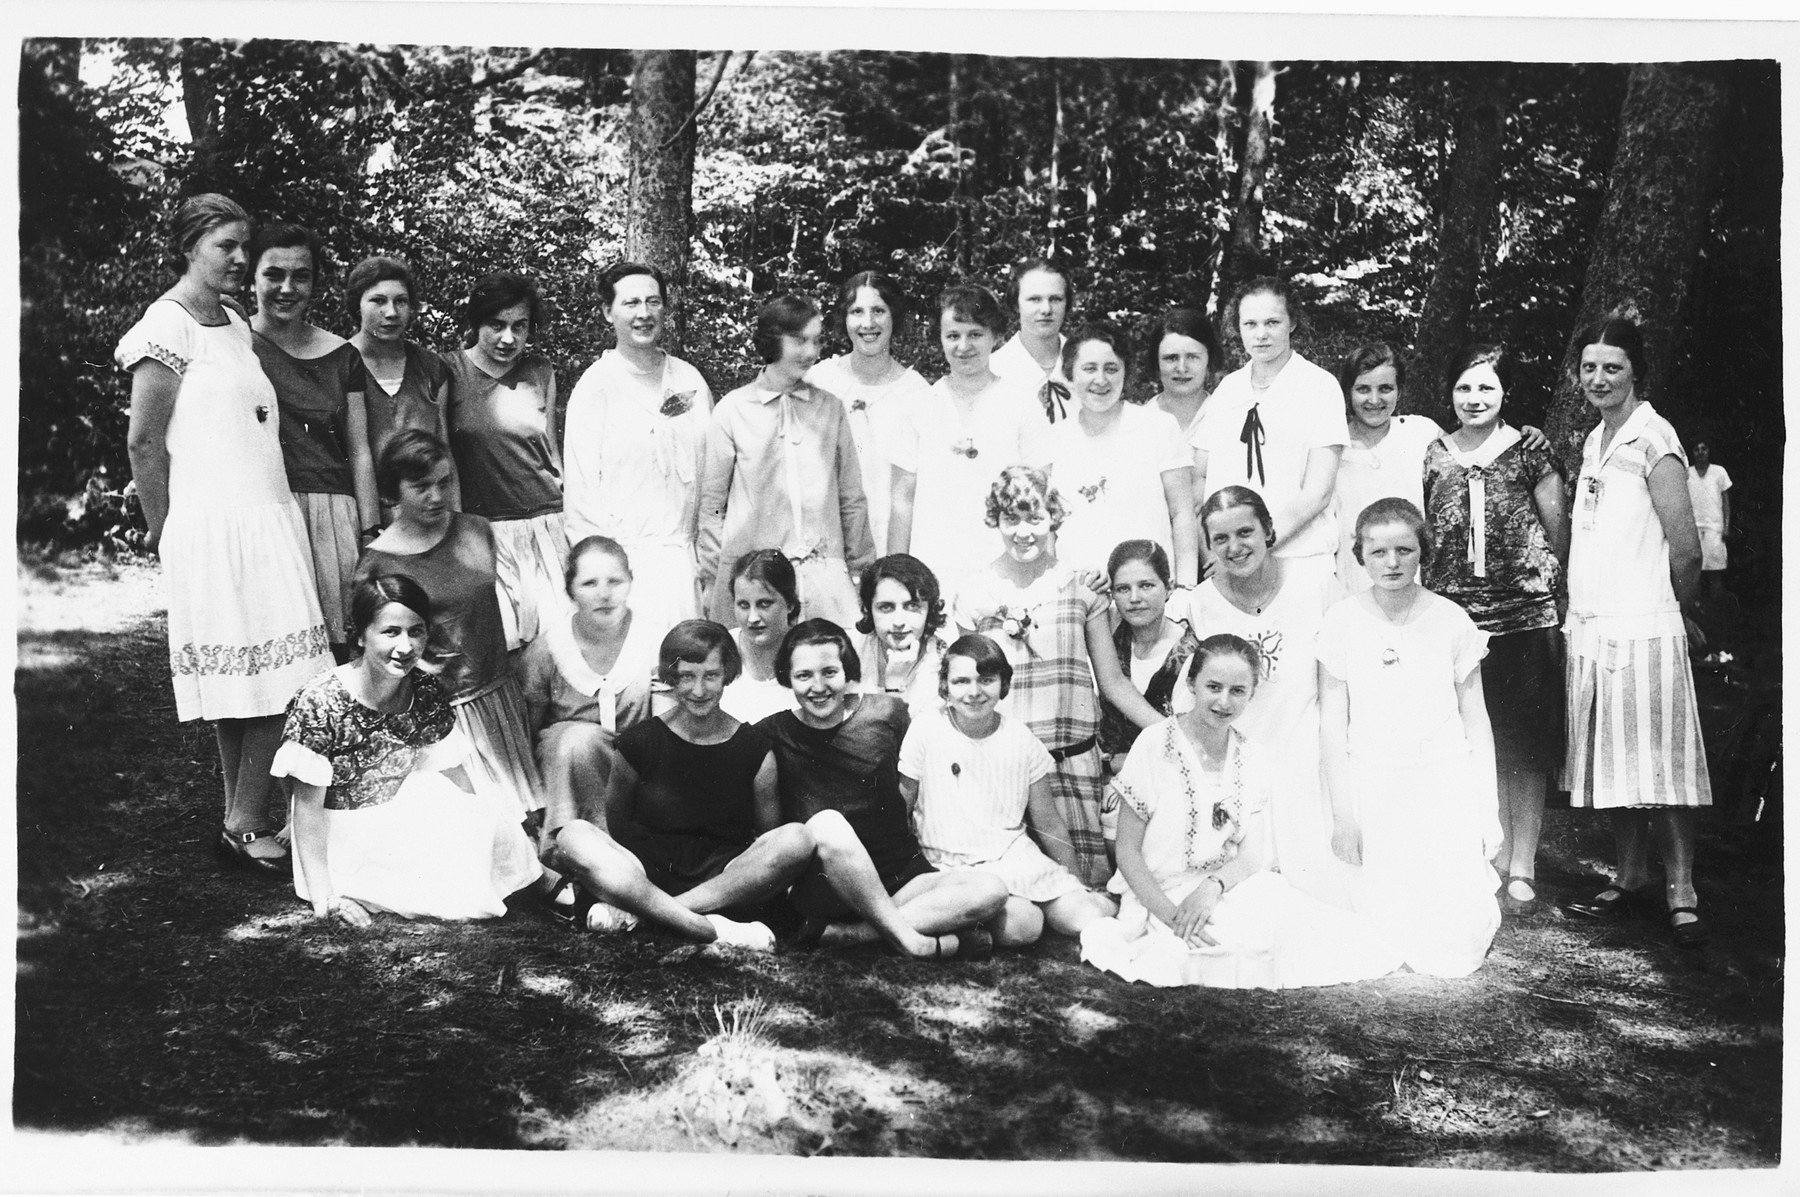 Group portrait of Jewish youth on an outing in Russia.  Among those pictured is Shura Mesherowsky.